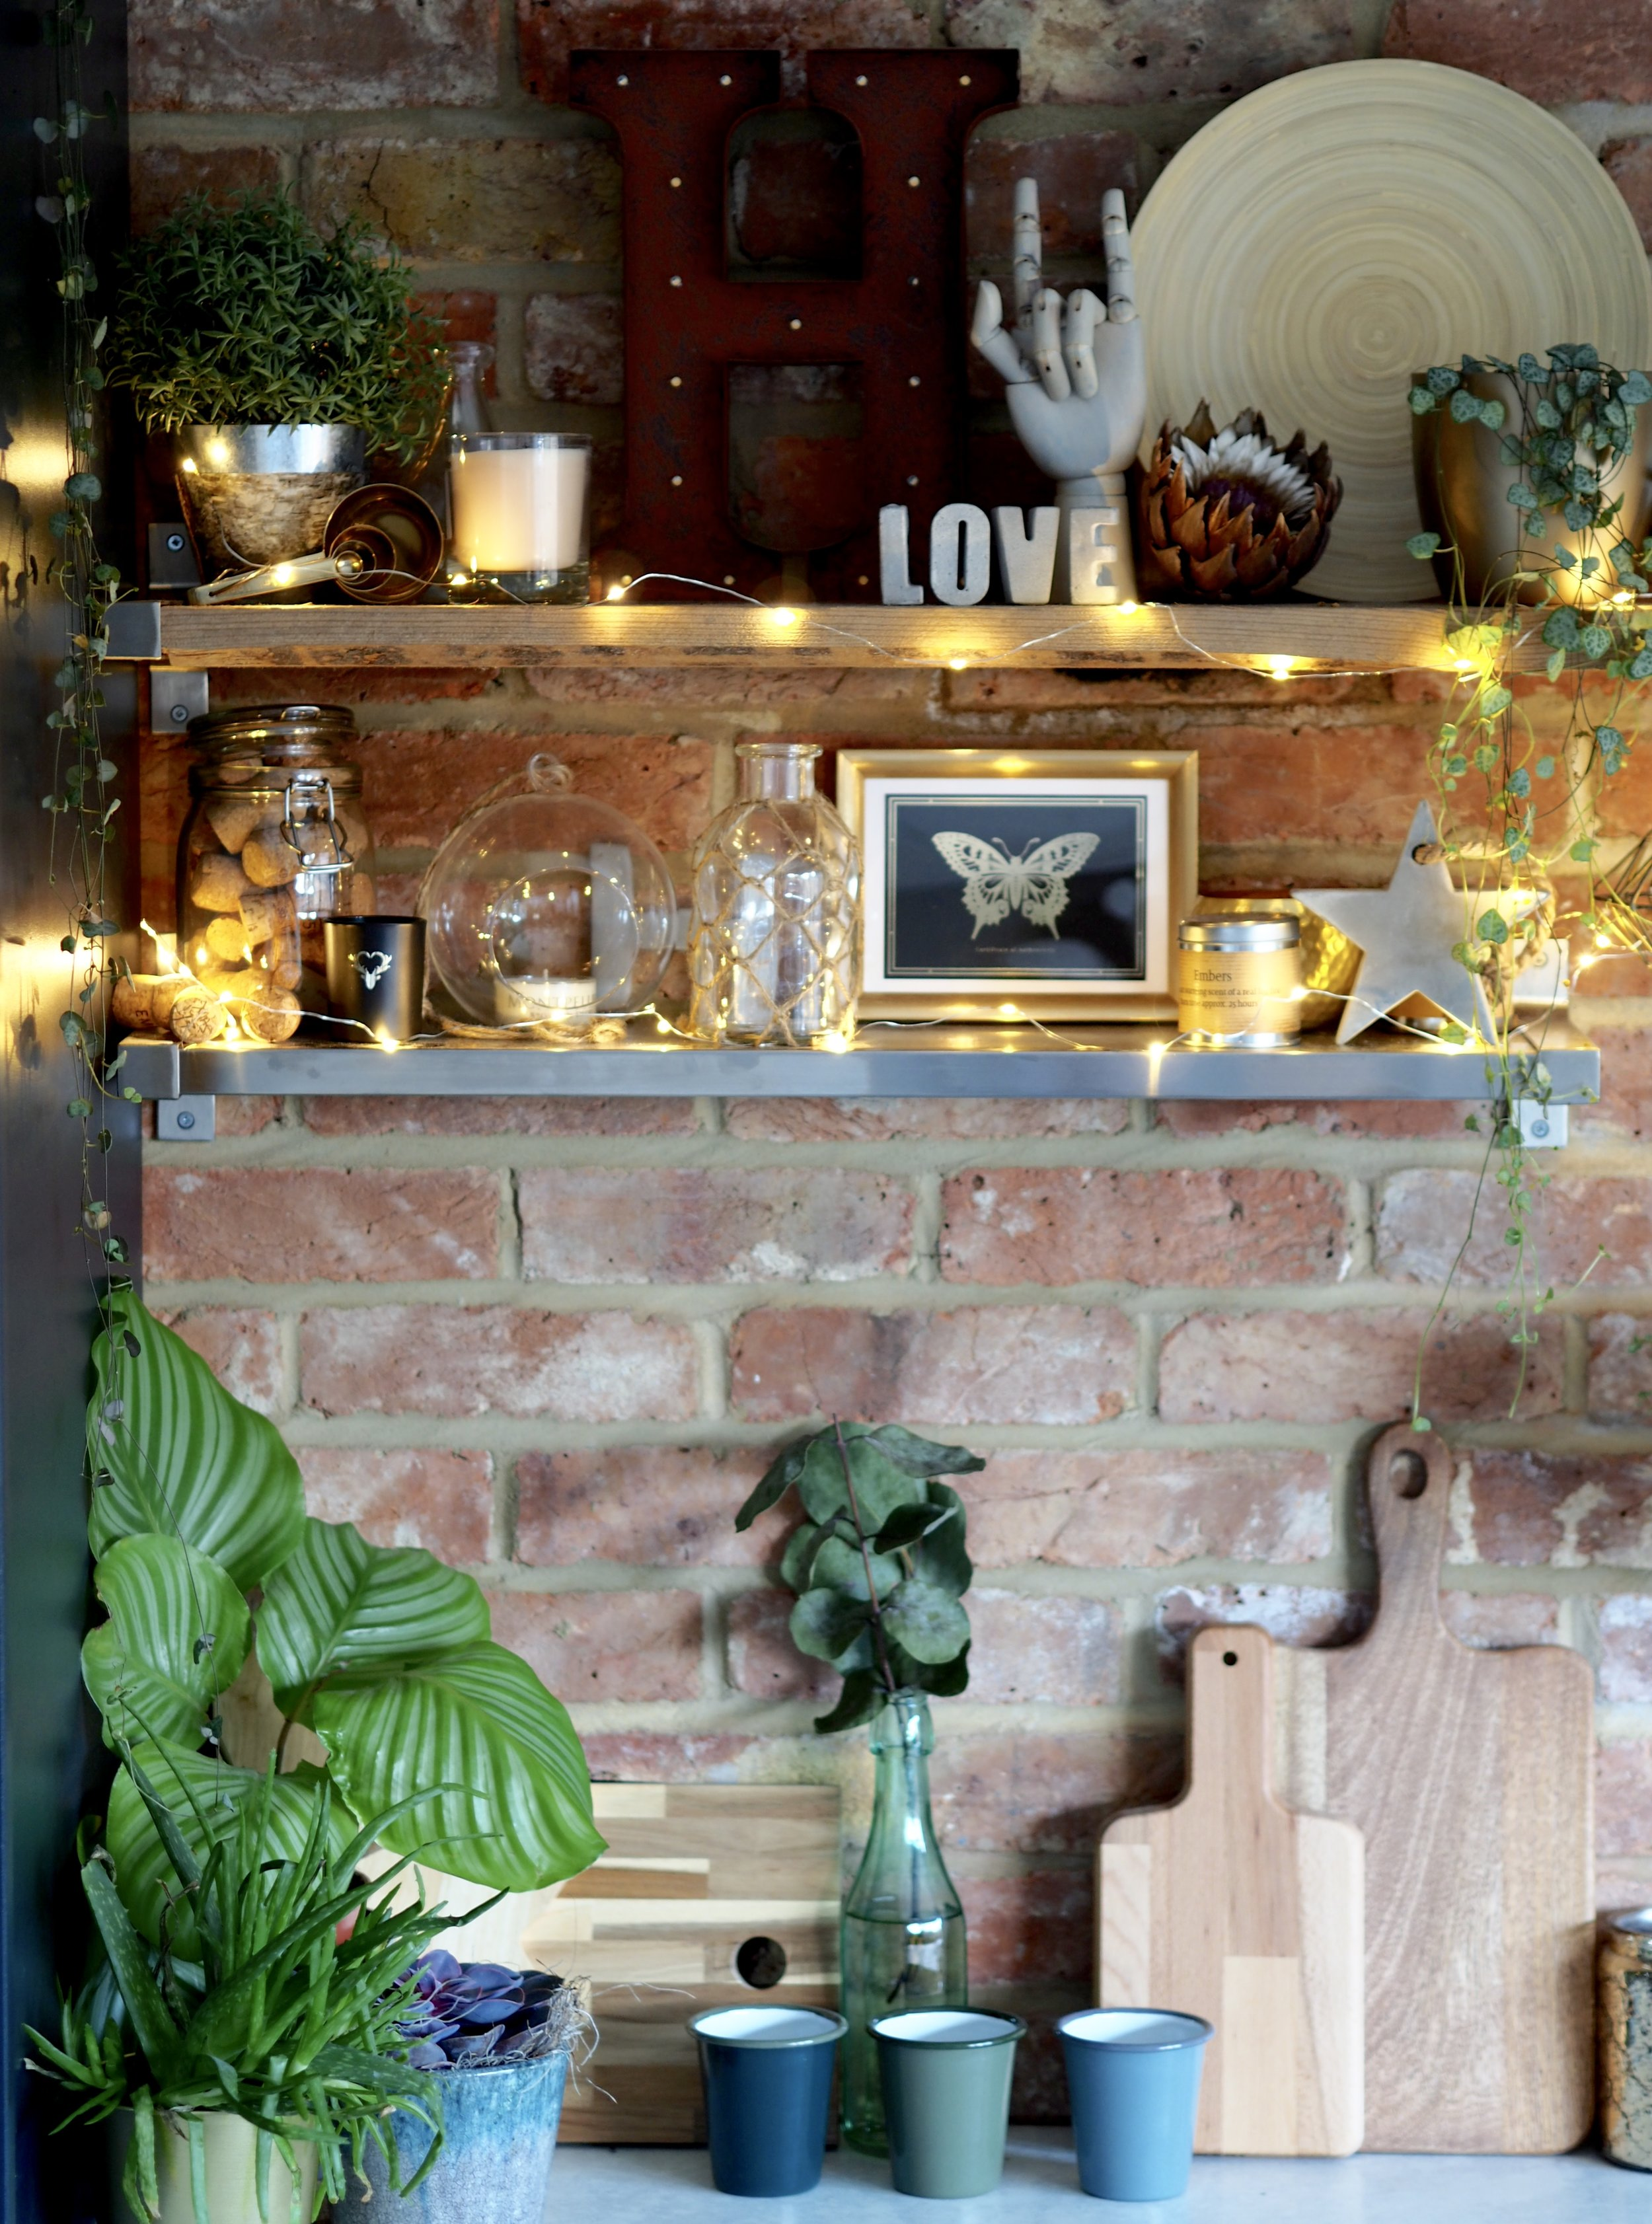 The fairy lights certainly make all the things I love on my kitchen shelves stand out more......